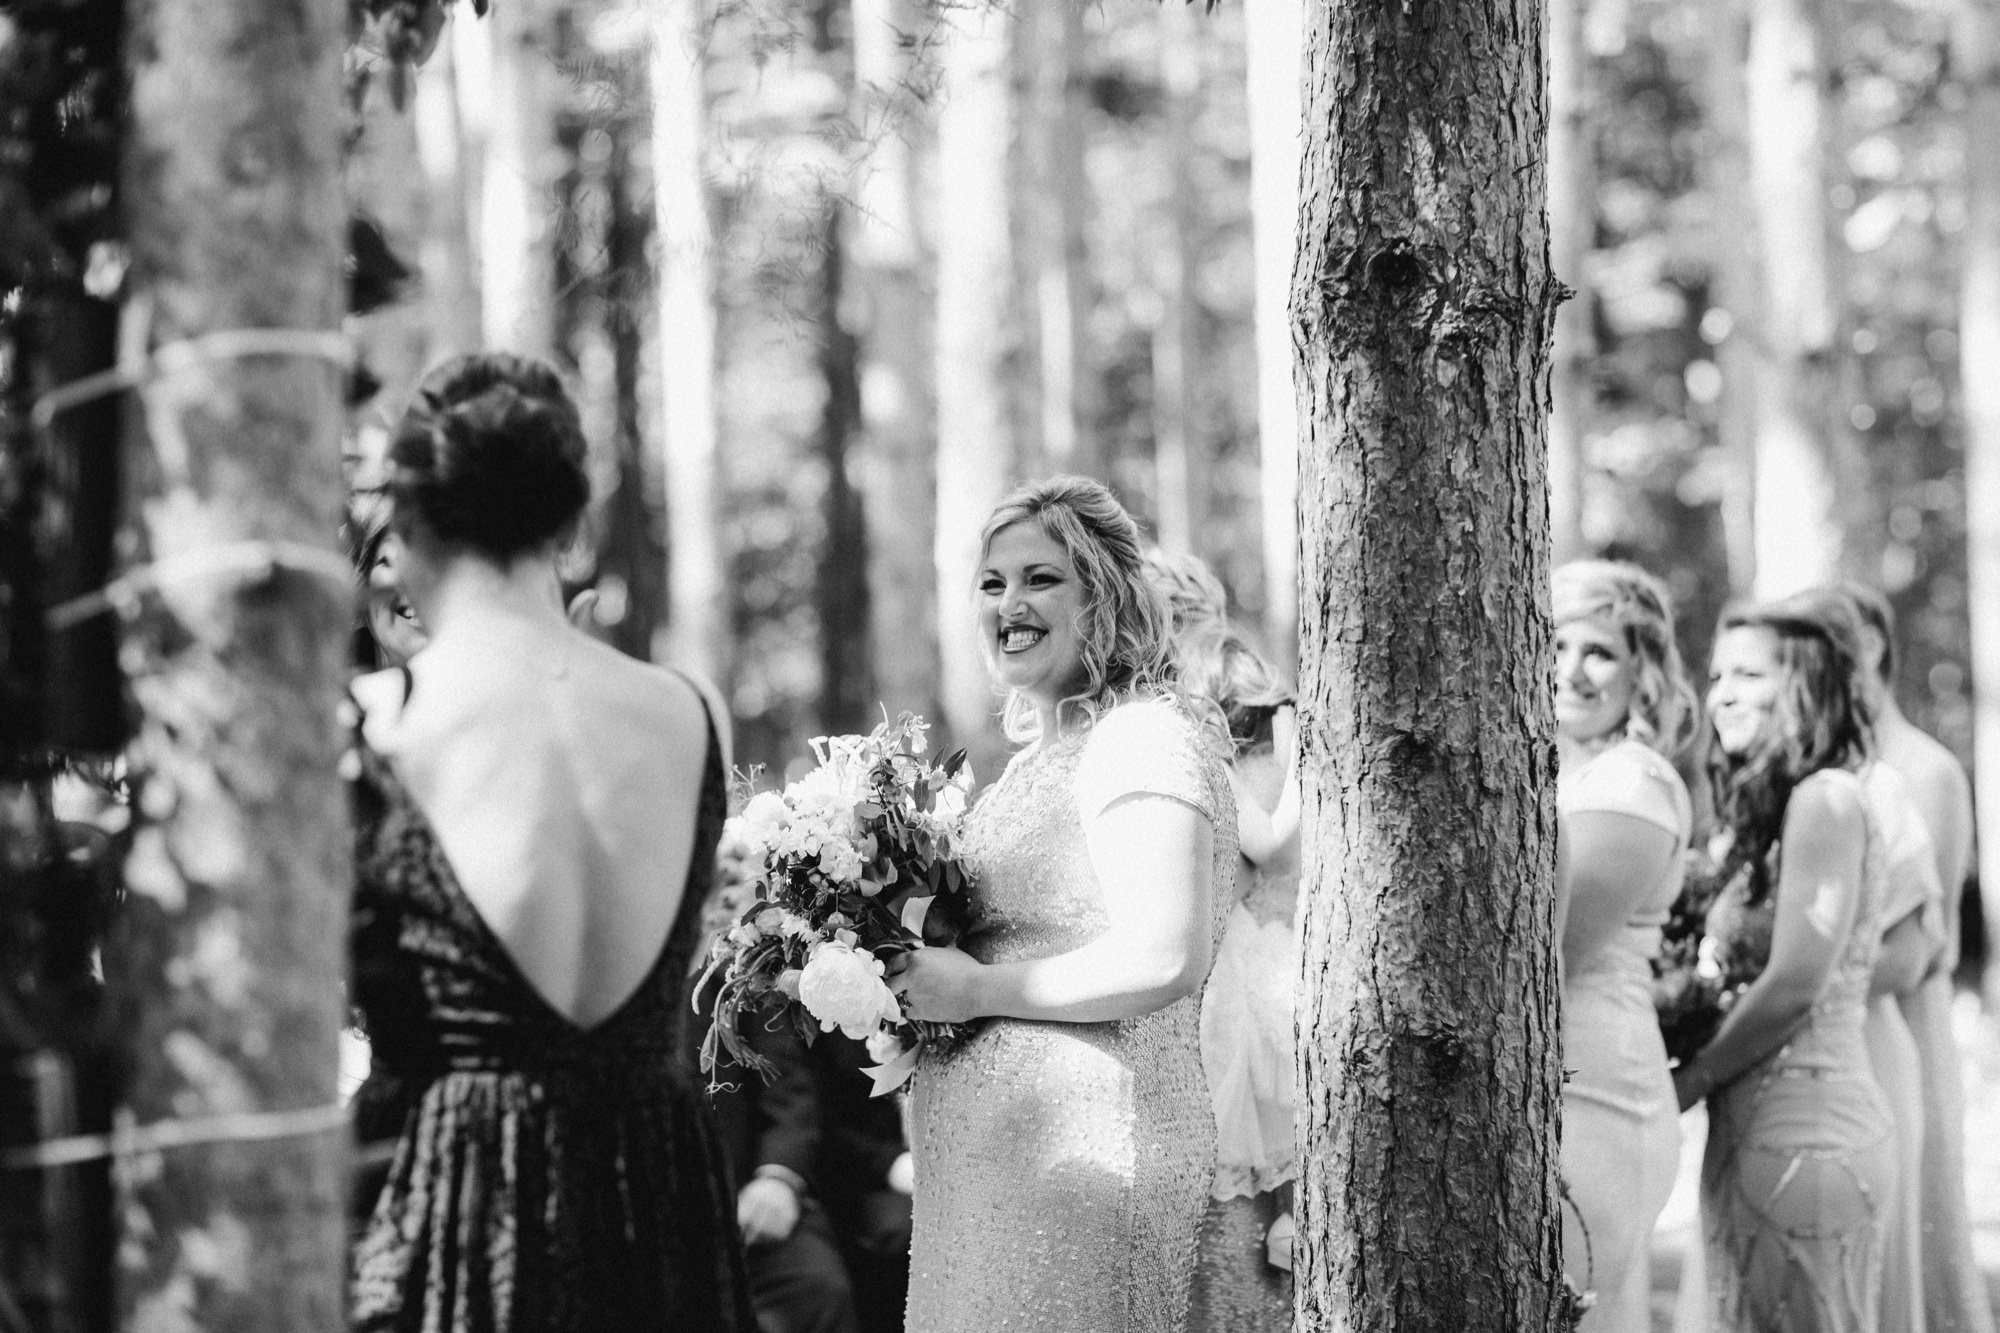 Bridesmaid at wedding ceremony at the Pine Grove location at Roxbury Barn Estate in the Catskills New York